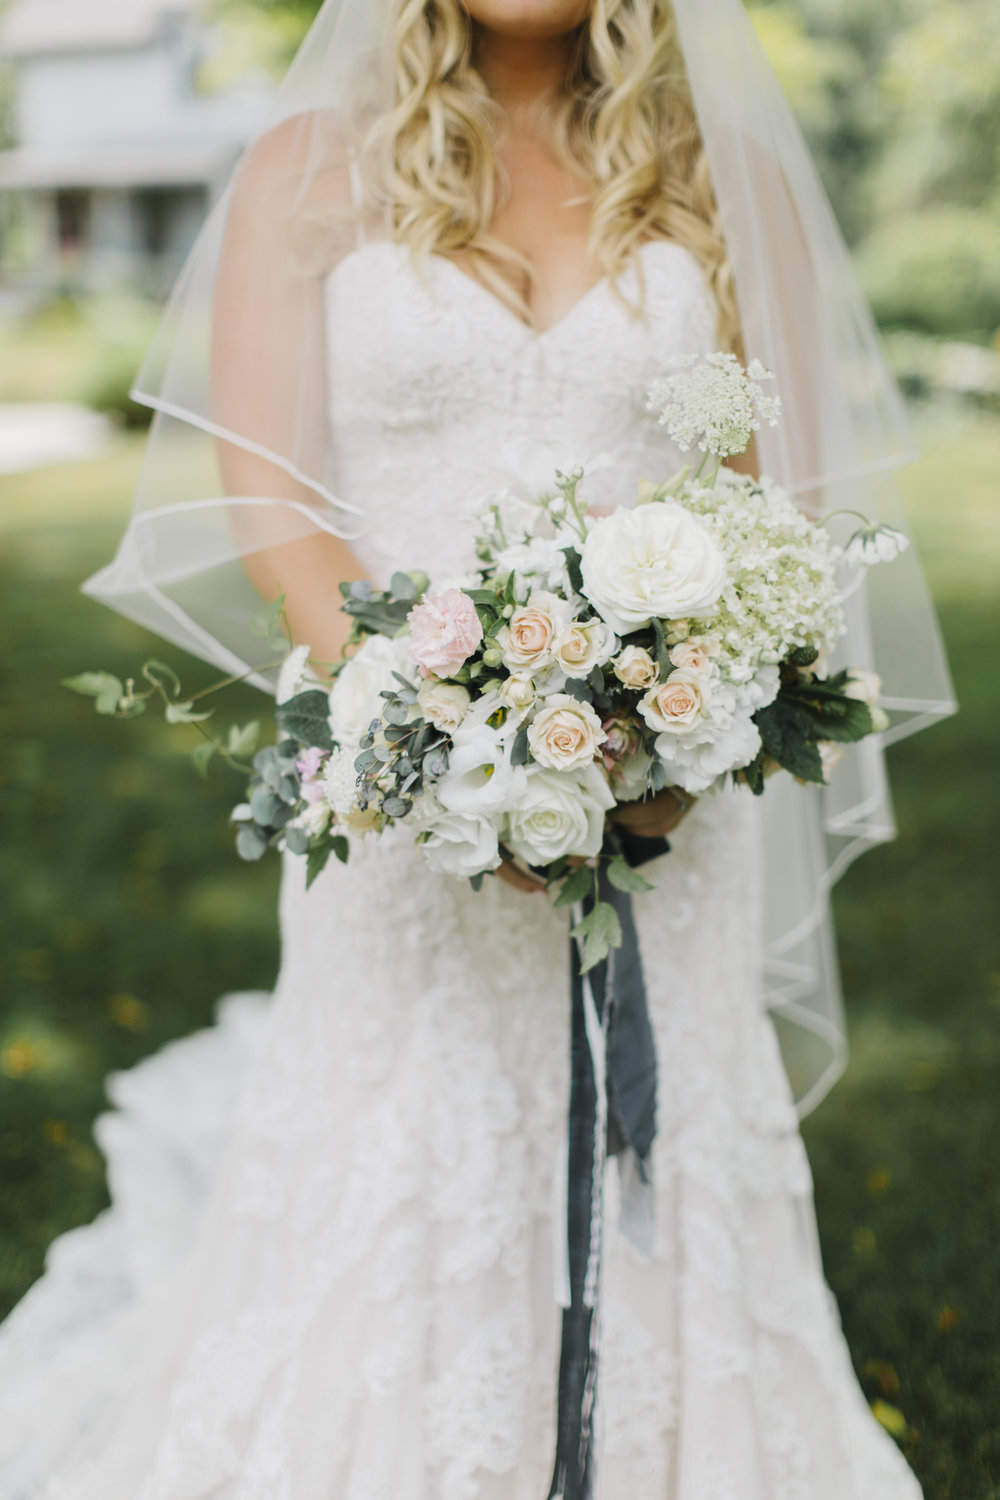 Watershed-Floral-Live-Well-Farm-Maine-Summer-Bridal-Bouquet-2.jpg